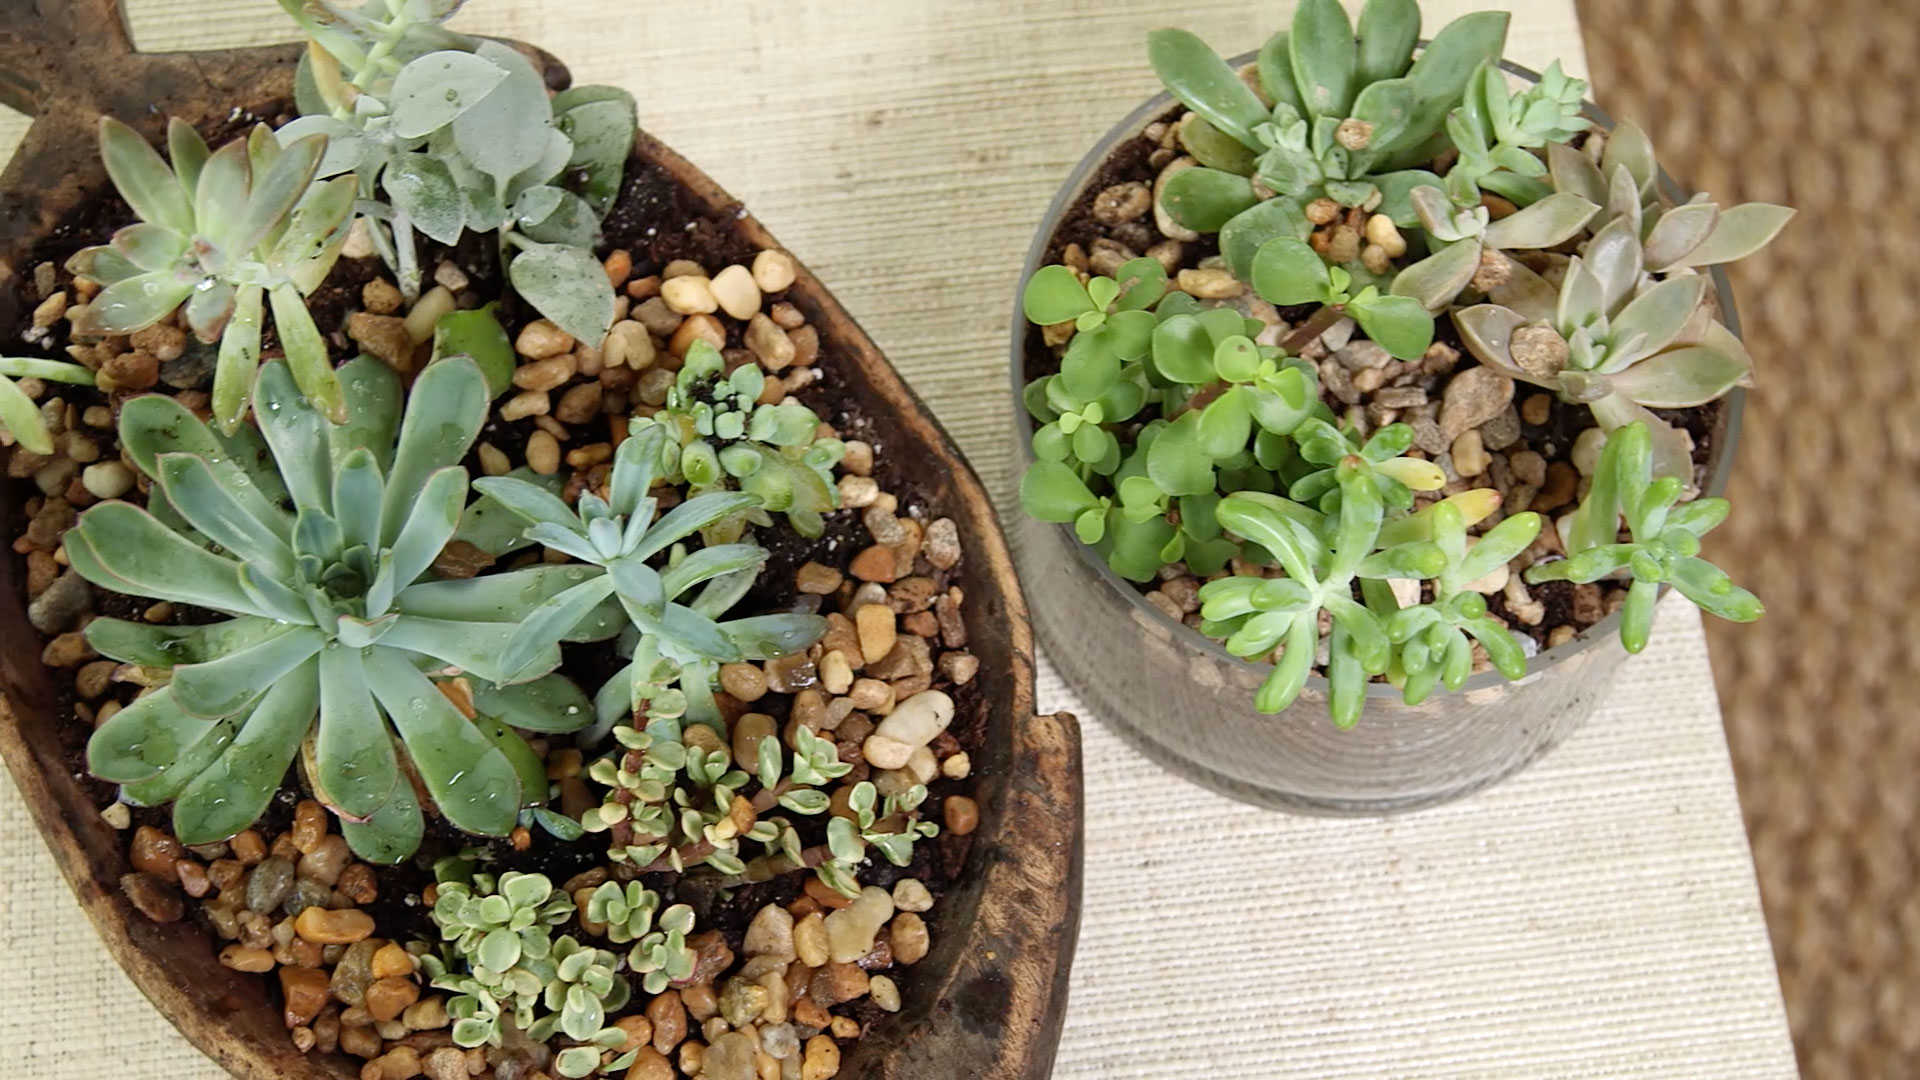 RX_1703_Porch Floral DIY Ideas_Porch Succulents